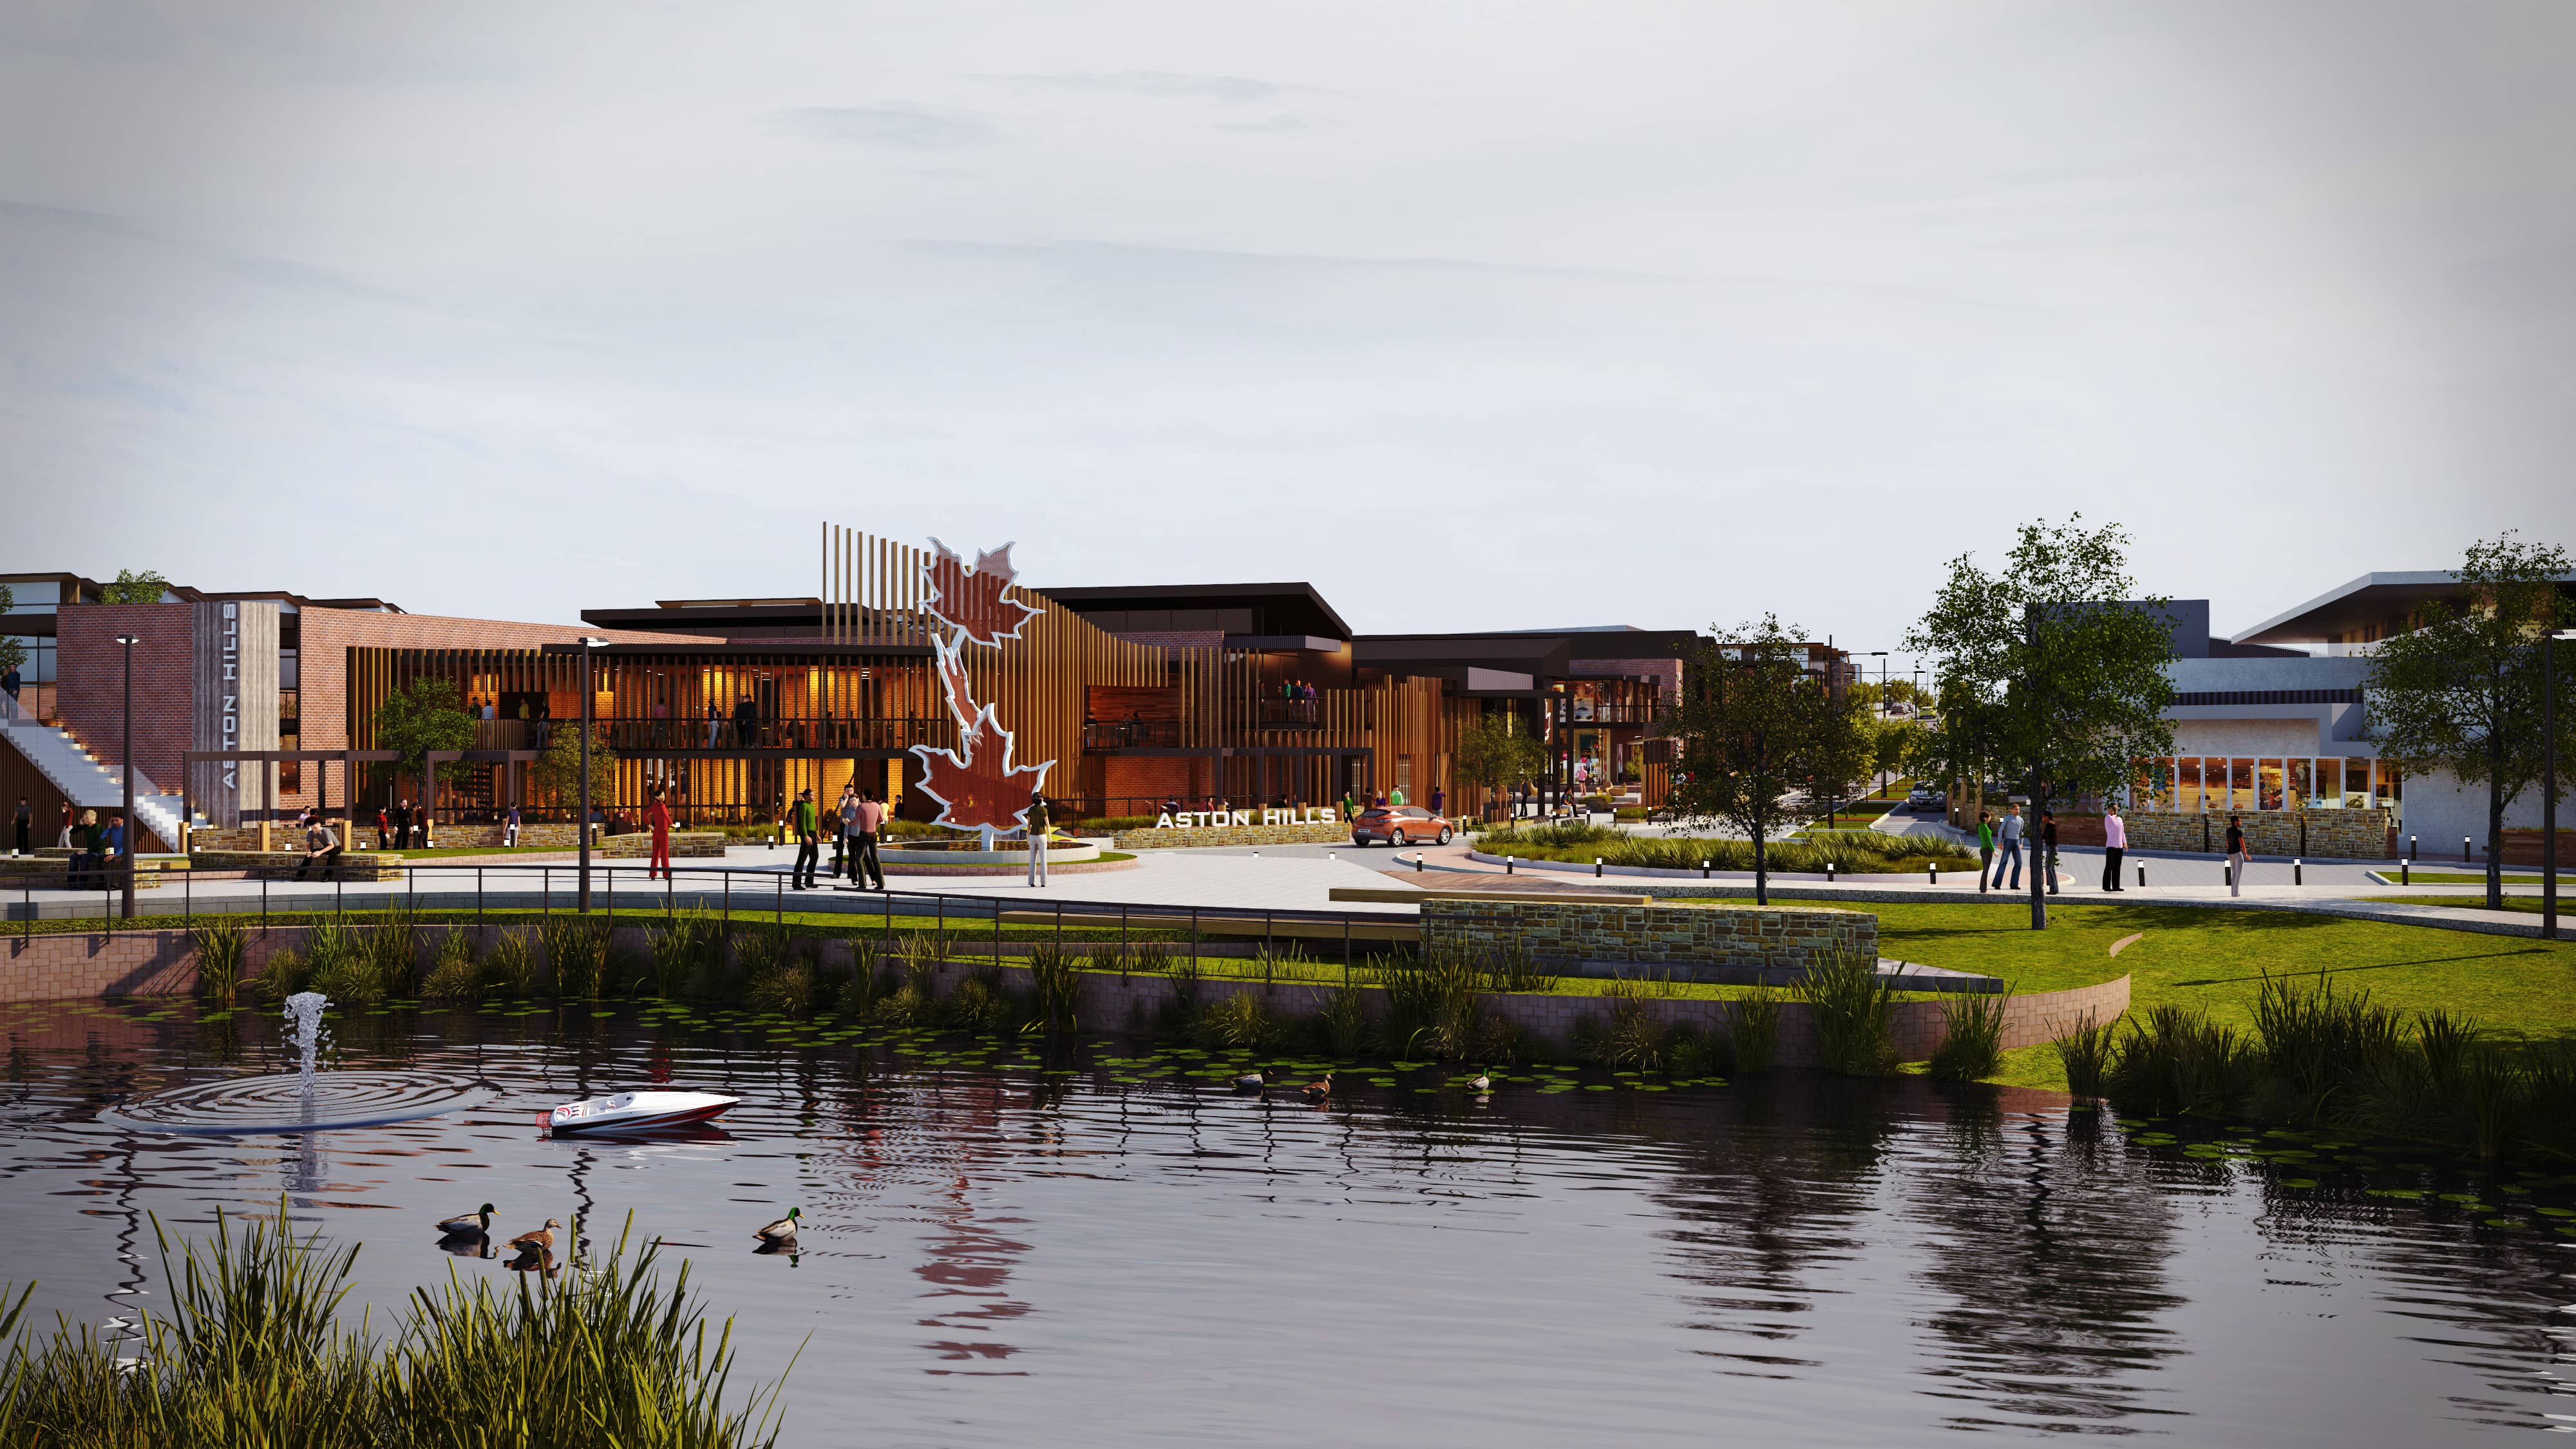 Aston Hills Mount Barker Central Lake Concept Art Lakes